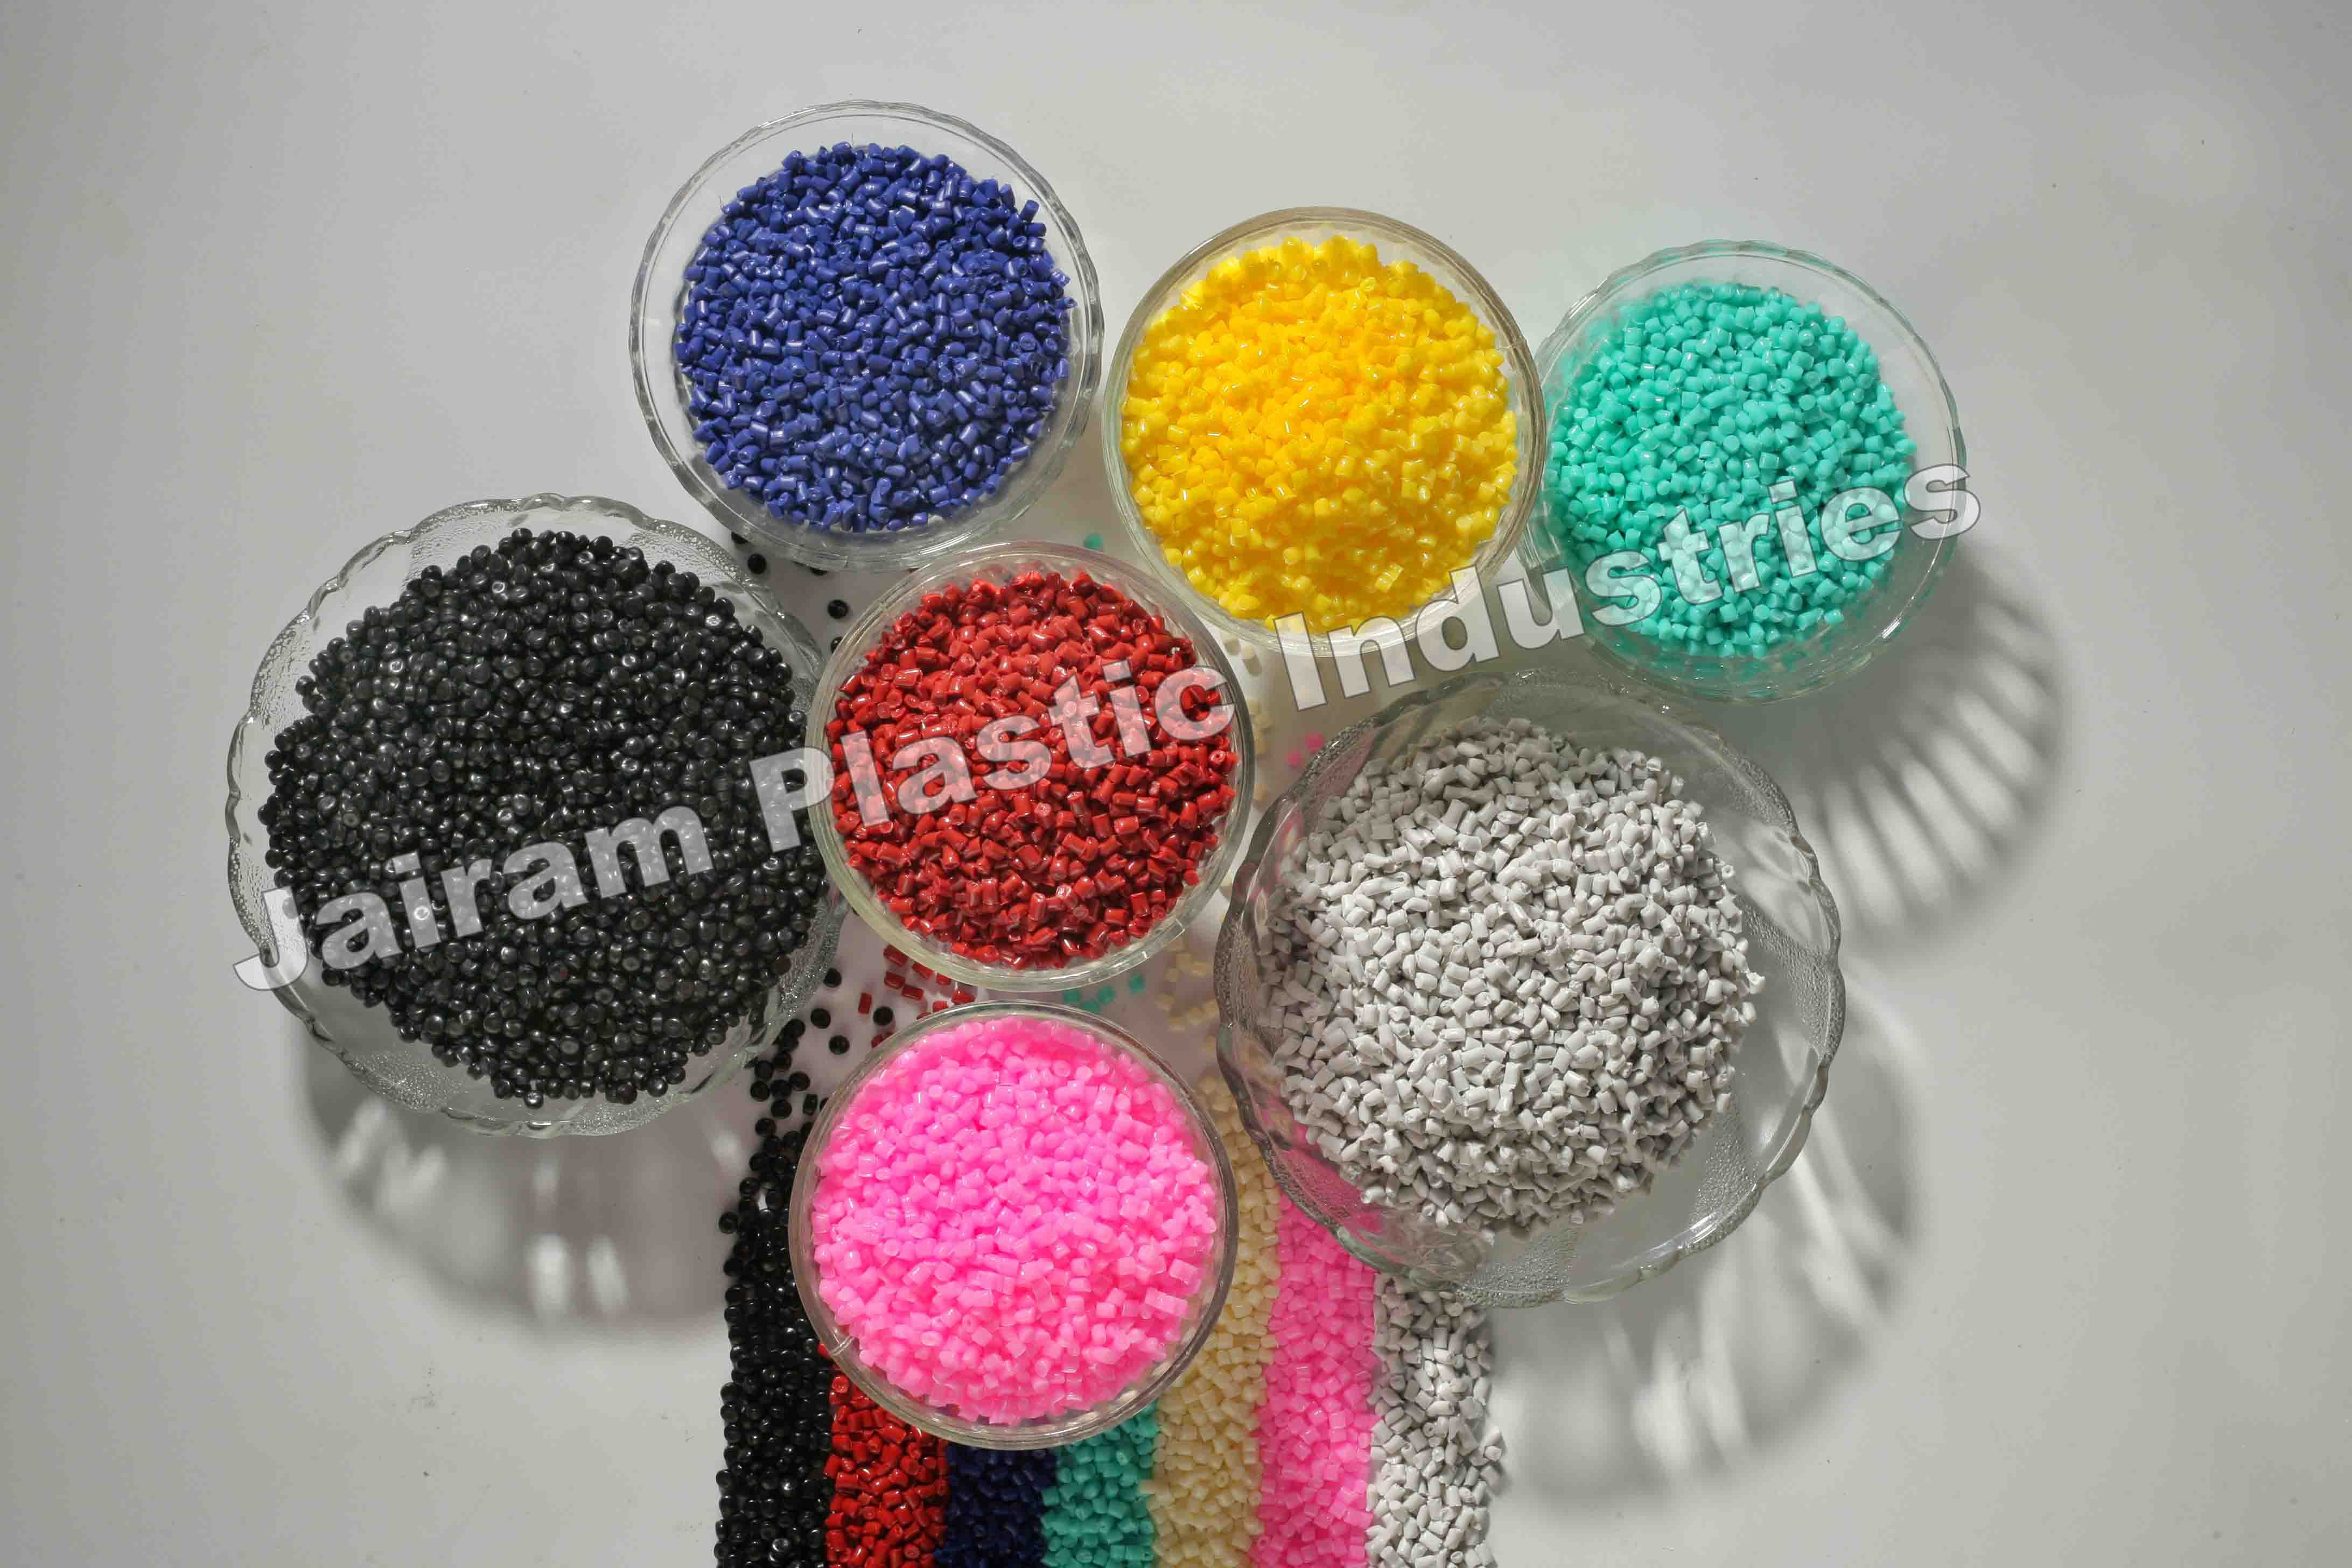 PP Granules   Our offered Granules are ideal for Production of various Plastic article. These granules are manufactured by sing high grade plastic Raw material. These is also known as PP White Granules, PP Black Granules, Colored PP Granules, PP Milky Granules, PP Plastic Granules, Reprocessed PP Granules, PP Raw Material, PP Natural Granules, Polypropylene Granules, PP Grade Plastic Raw Material, PP Molding Granules, PP Dana, Recycled PP Granules, PP Polymer, PP Compounding Granules, PP Plastic Raw Material, PP Off Grade Plastic Granules, PP Injection Grades Granules, Transparent PP Granules, Plastic PP Compounding Material, PPCP Black Granules, PPCP Granules, PPCP Natural Granules, PPCP White Granules, PPCP Colored Granules, HD Granules, Recycle Processed Granules, Reprocessed Plastic Granules, Plastic Granules, Plastic Raw Material, Recycled Plastic Granules, Plastic Polymers, Reprocessed Plastic Material, RP Plastic Granules, Off Grade Plastic Granules, Colored Plastic Granules etc  We are supplying in various cities like Rajkot, Ahmedabad, Surat, Vadodara, Mumbai, Delhi, Pune, Bangaluru, Maharashtra, Gujarat, Madhya Pradesh, Indore Bhavnagar, Jamnagar, Gandhinagar, Surendranagar, Vapi, Daman, Silvassa etc